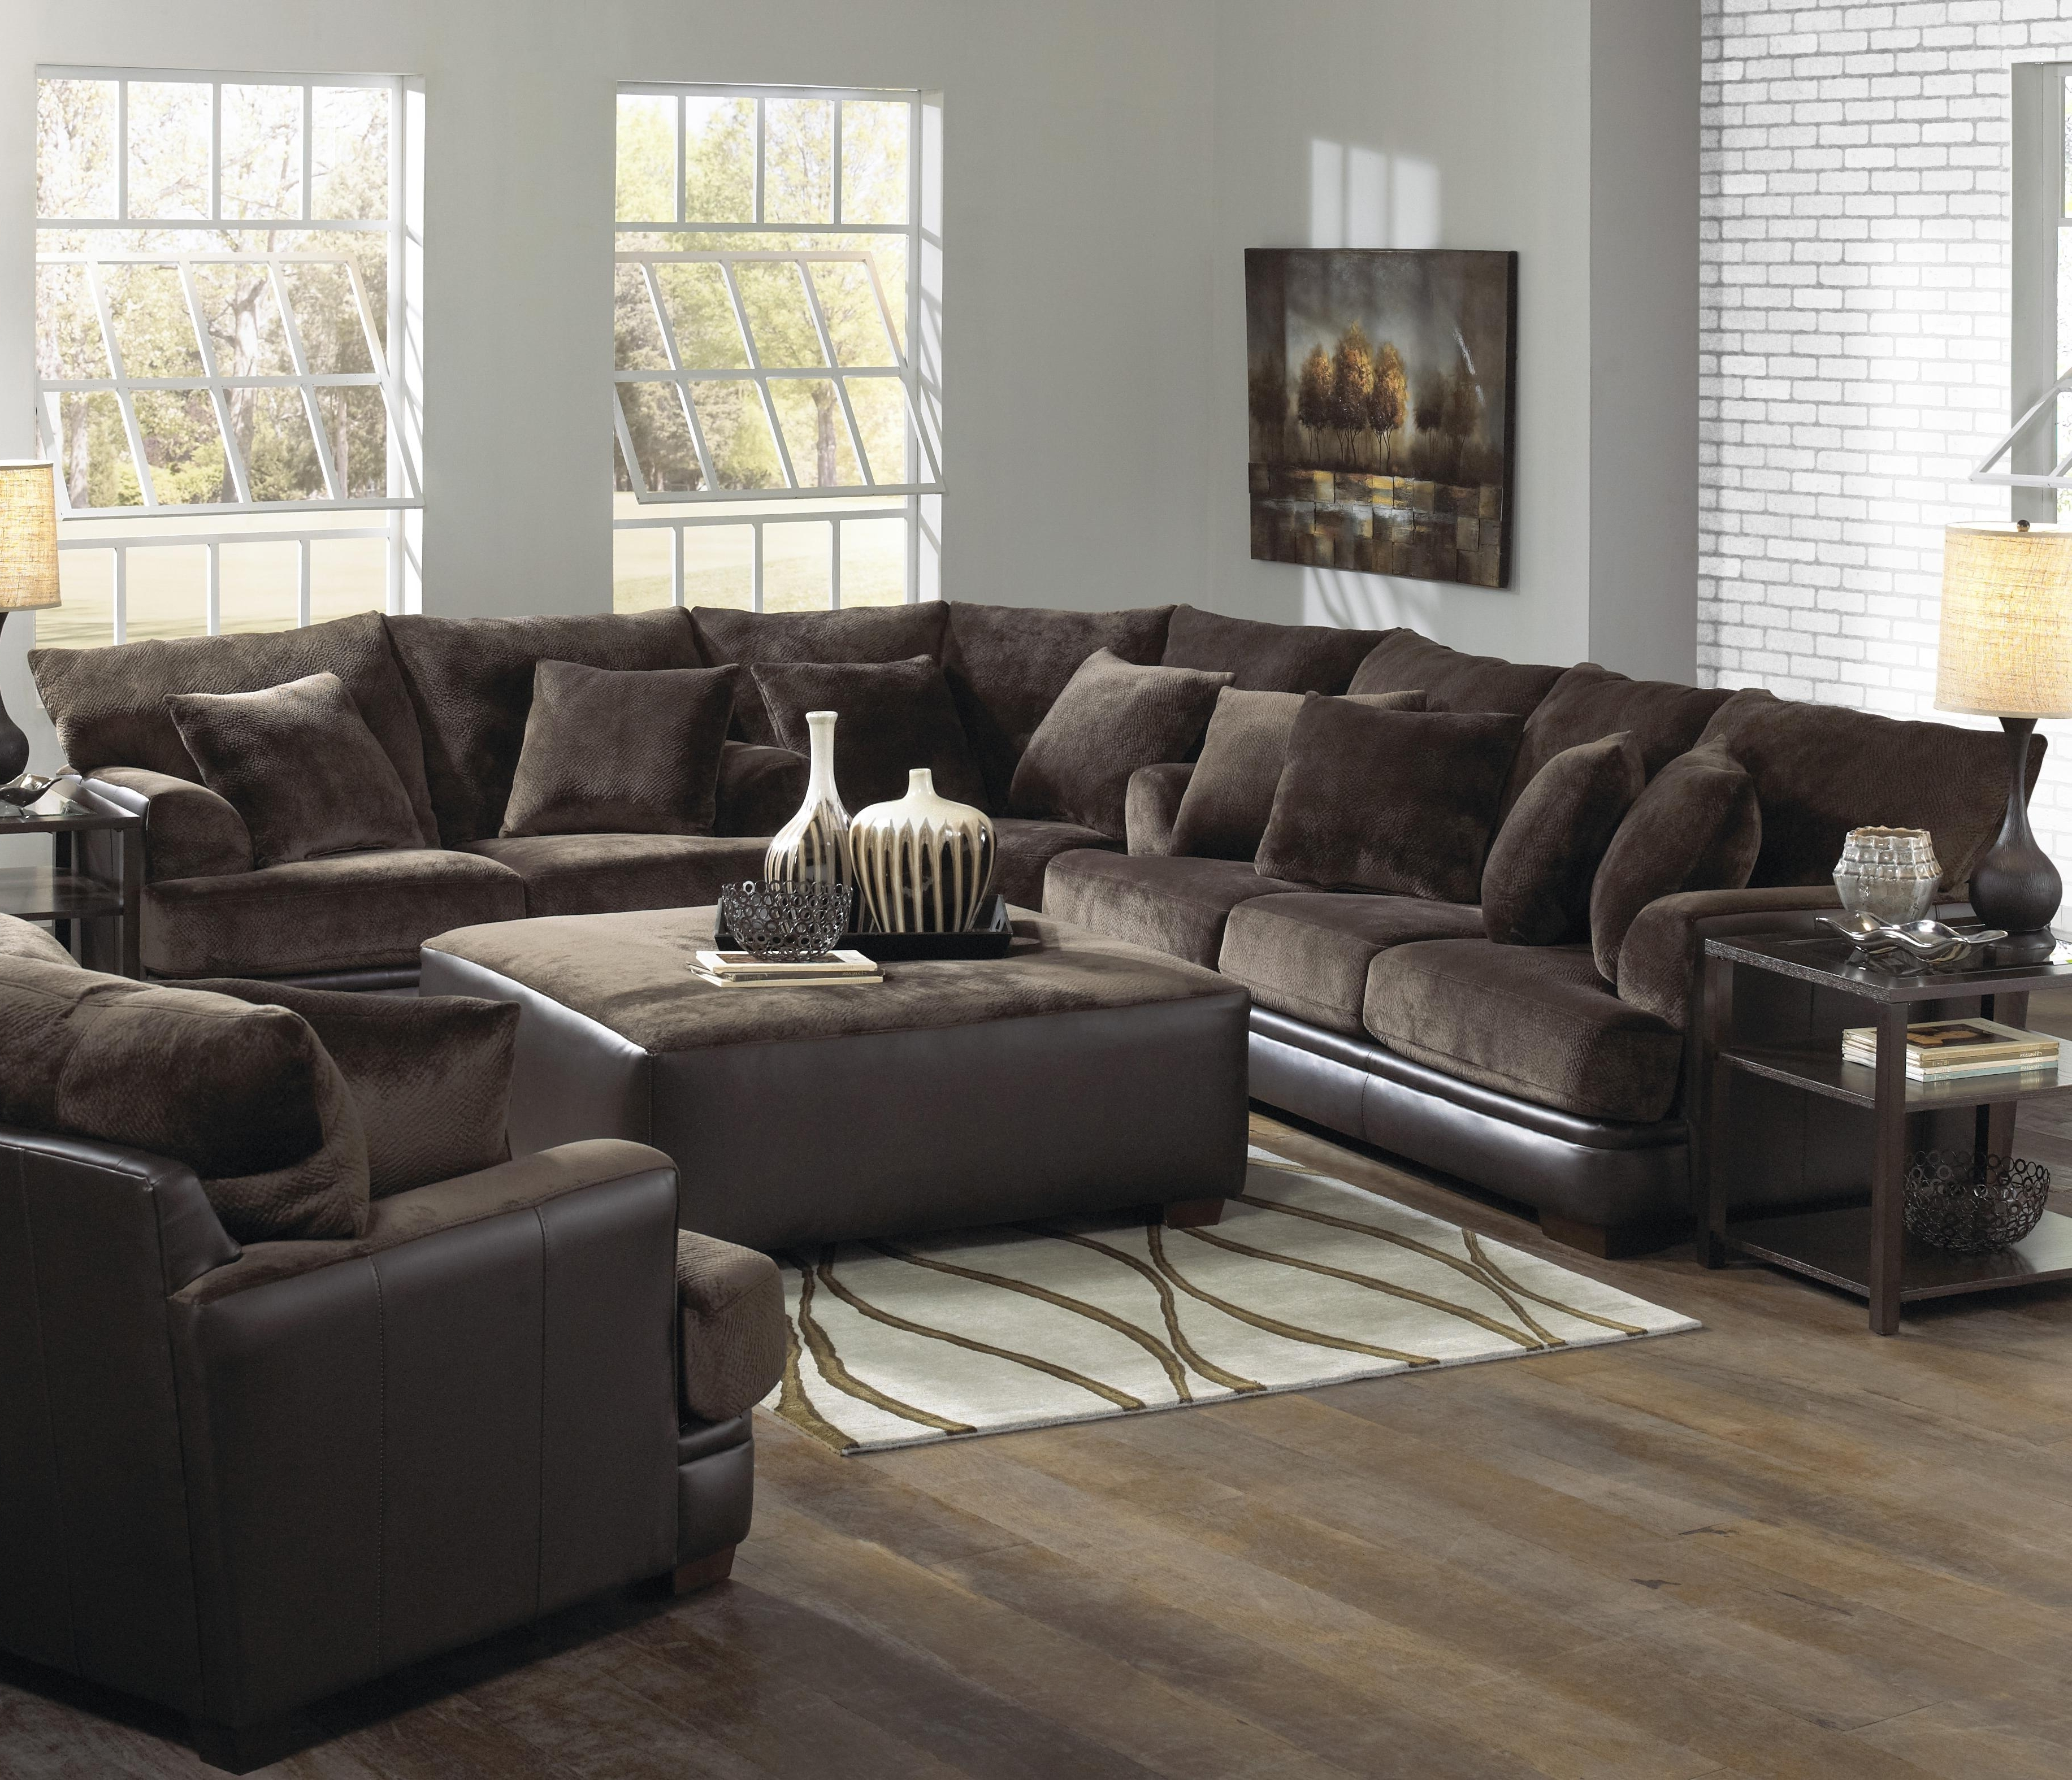 Extra Large Sectional Sofas (View 6 of 20)